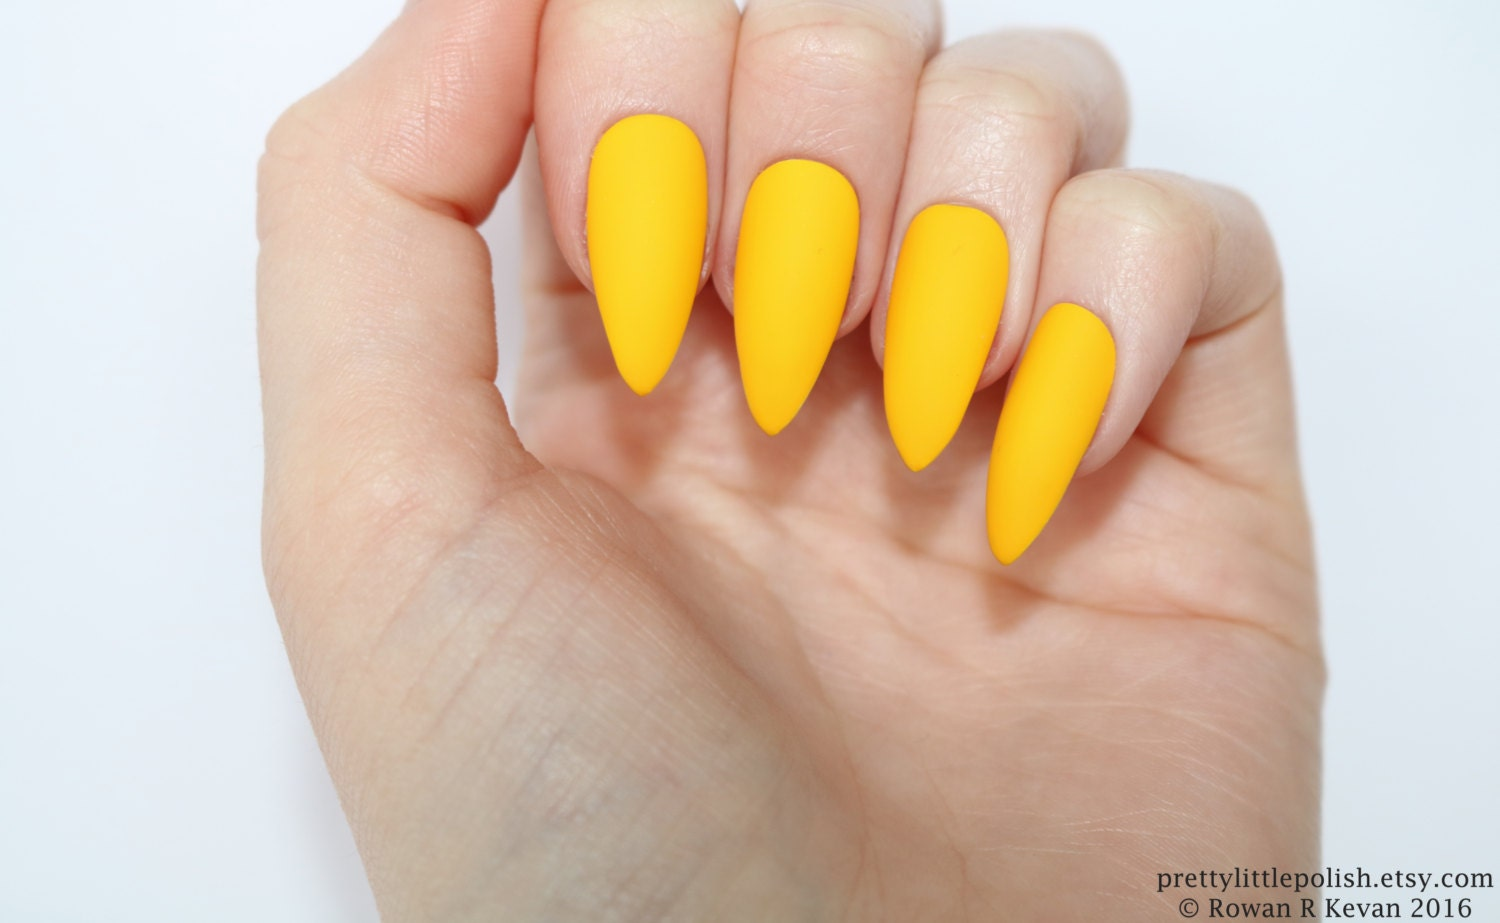 Stiletto nails Matte yellow stiletto nails Fake nails Press